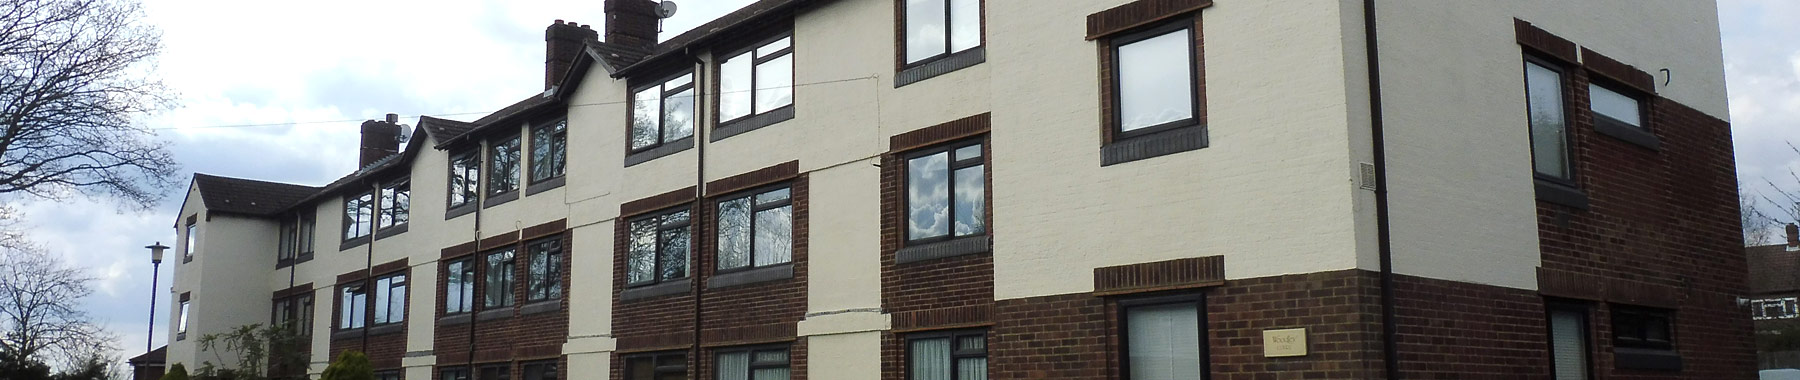 Block Management, Dormer Close, Aylesbury Buckinghamshire